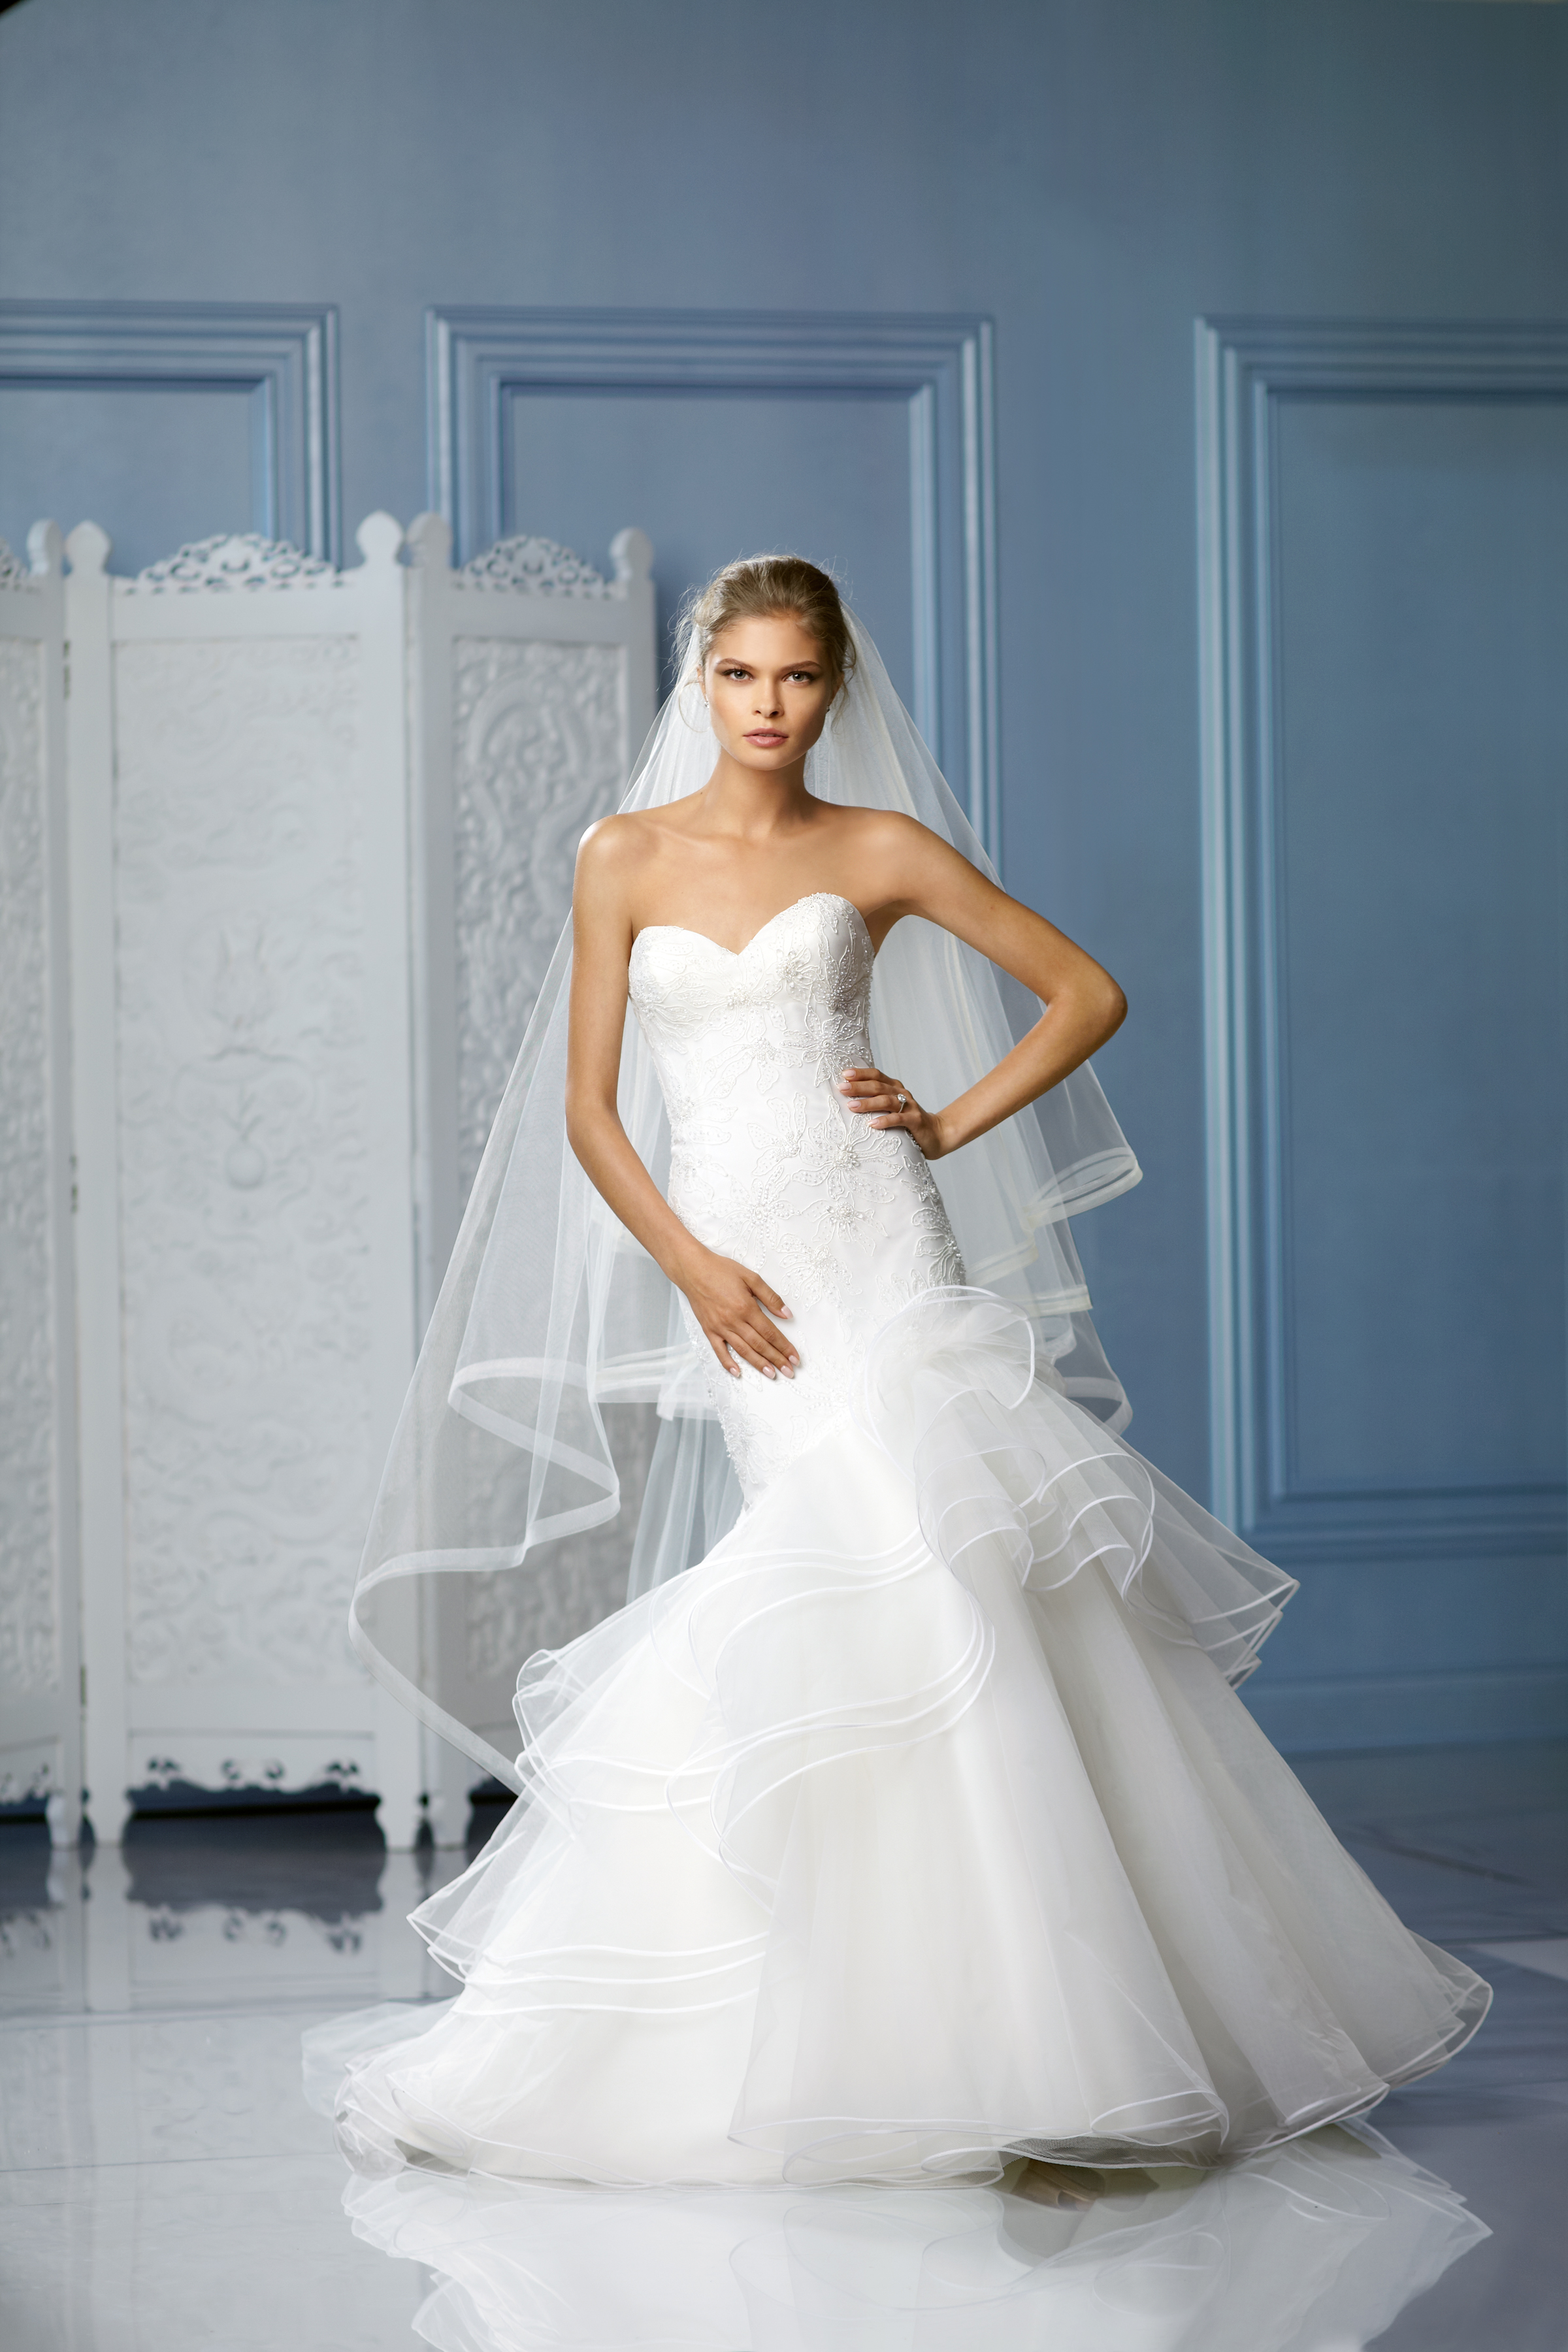 Sweetheart Wedding Dresses, Mermaid Wedding Dresses, Ruffled Wedding Dresses, Lace Wedding Dresses, Hollywood Glam Wedding Dresses, Fashion, white, ivory, Spring, Summer, Winter, Modern, Lace, Sweetheart, Strapless, Strapless Wedding Dresses, Tulle, Floor, Wedding dress, Ruffles, Mermaid/Trumpet, Fit-n-Flare, hollywood glam, Modern Wedding Dresses, trumpet wedding dresses, Spring Wedding Dresses, tulle wedding dresses, Wtoo Brides, winter wedding dresses, Summer Wedding Dresses, Floor Wedding Dresses